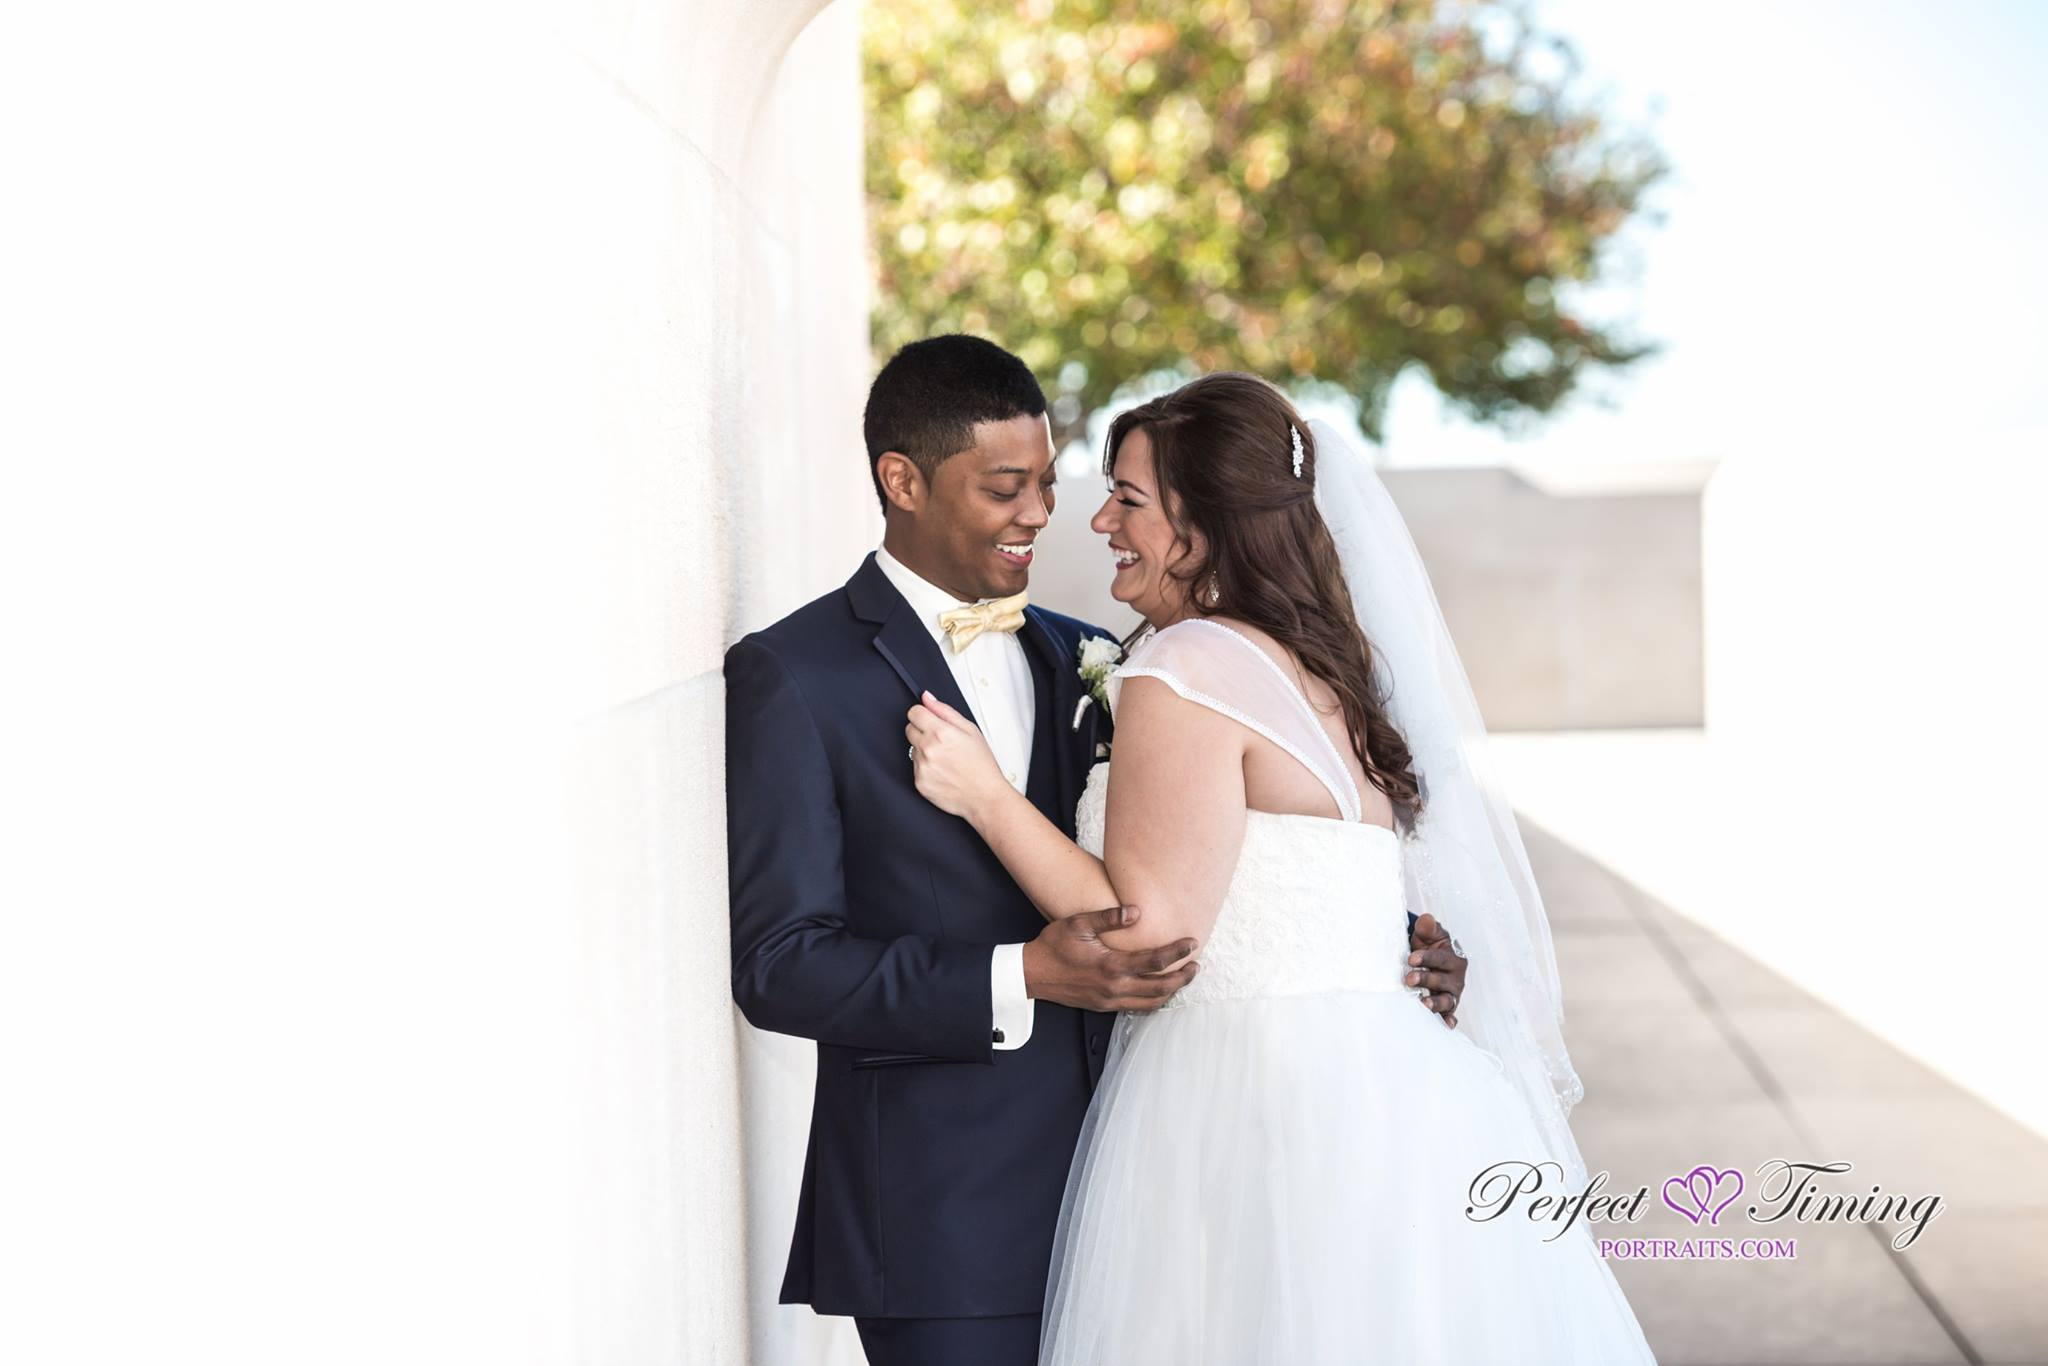 Mr. and Mrs. Boyd